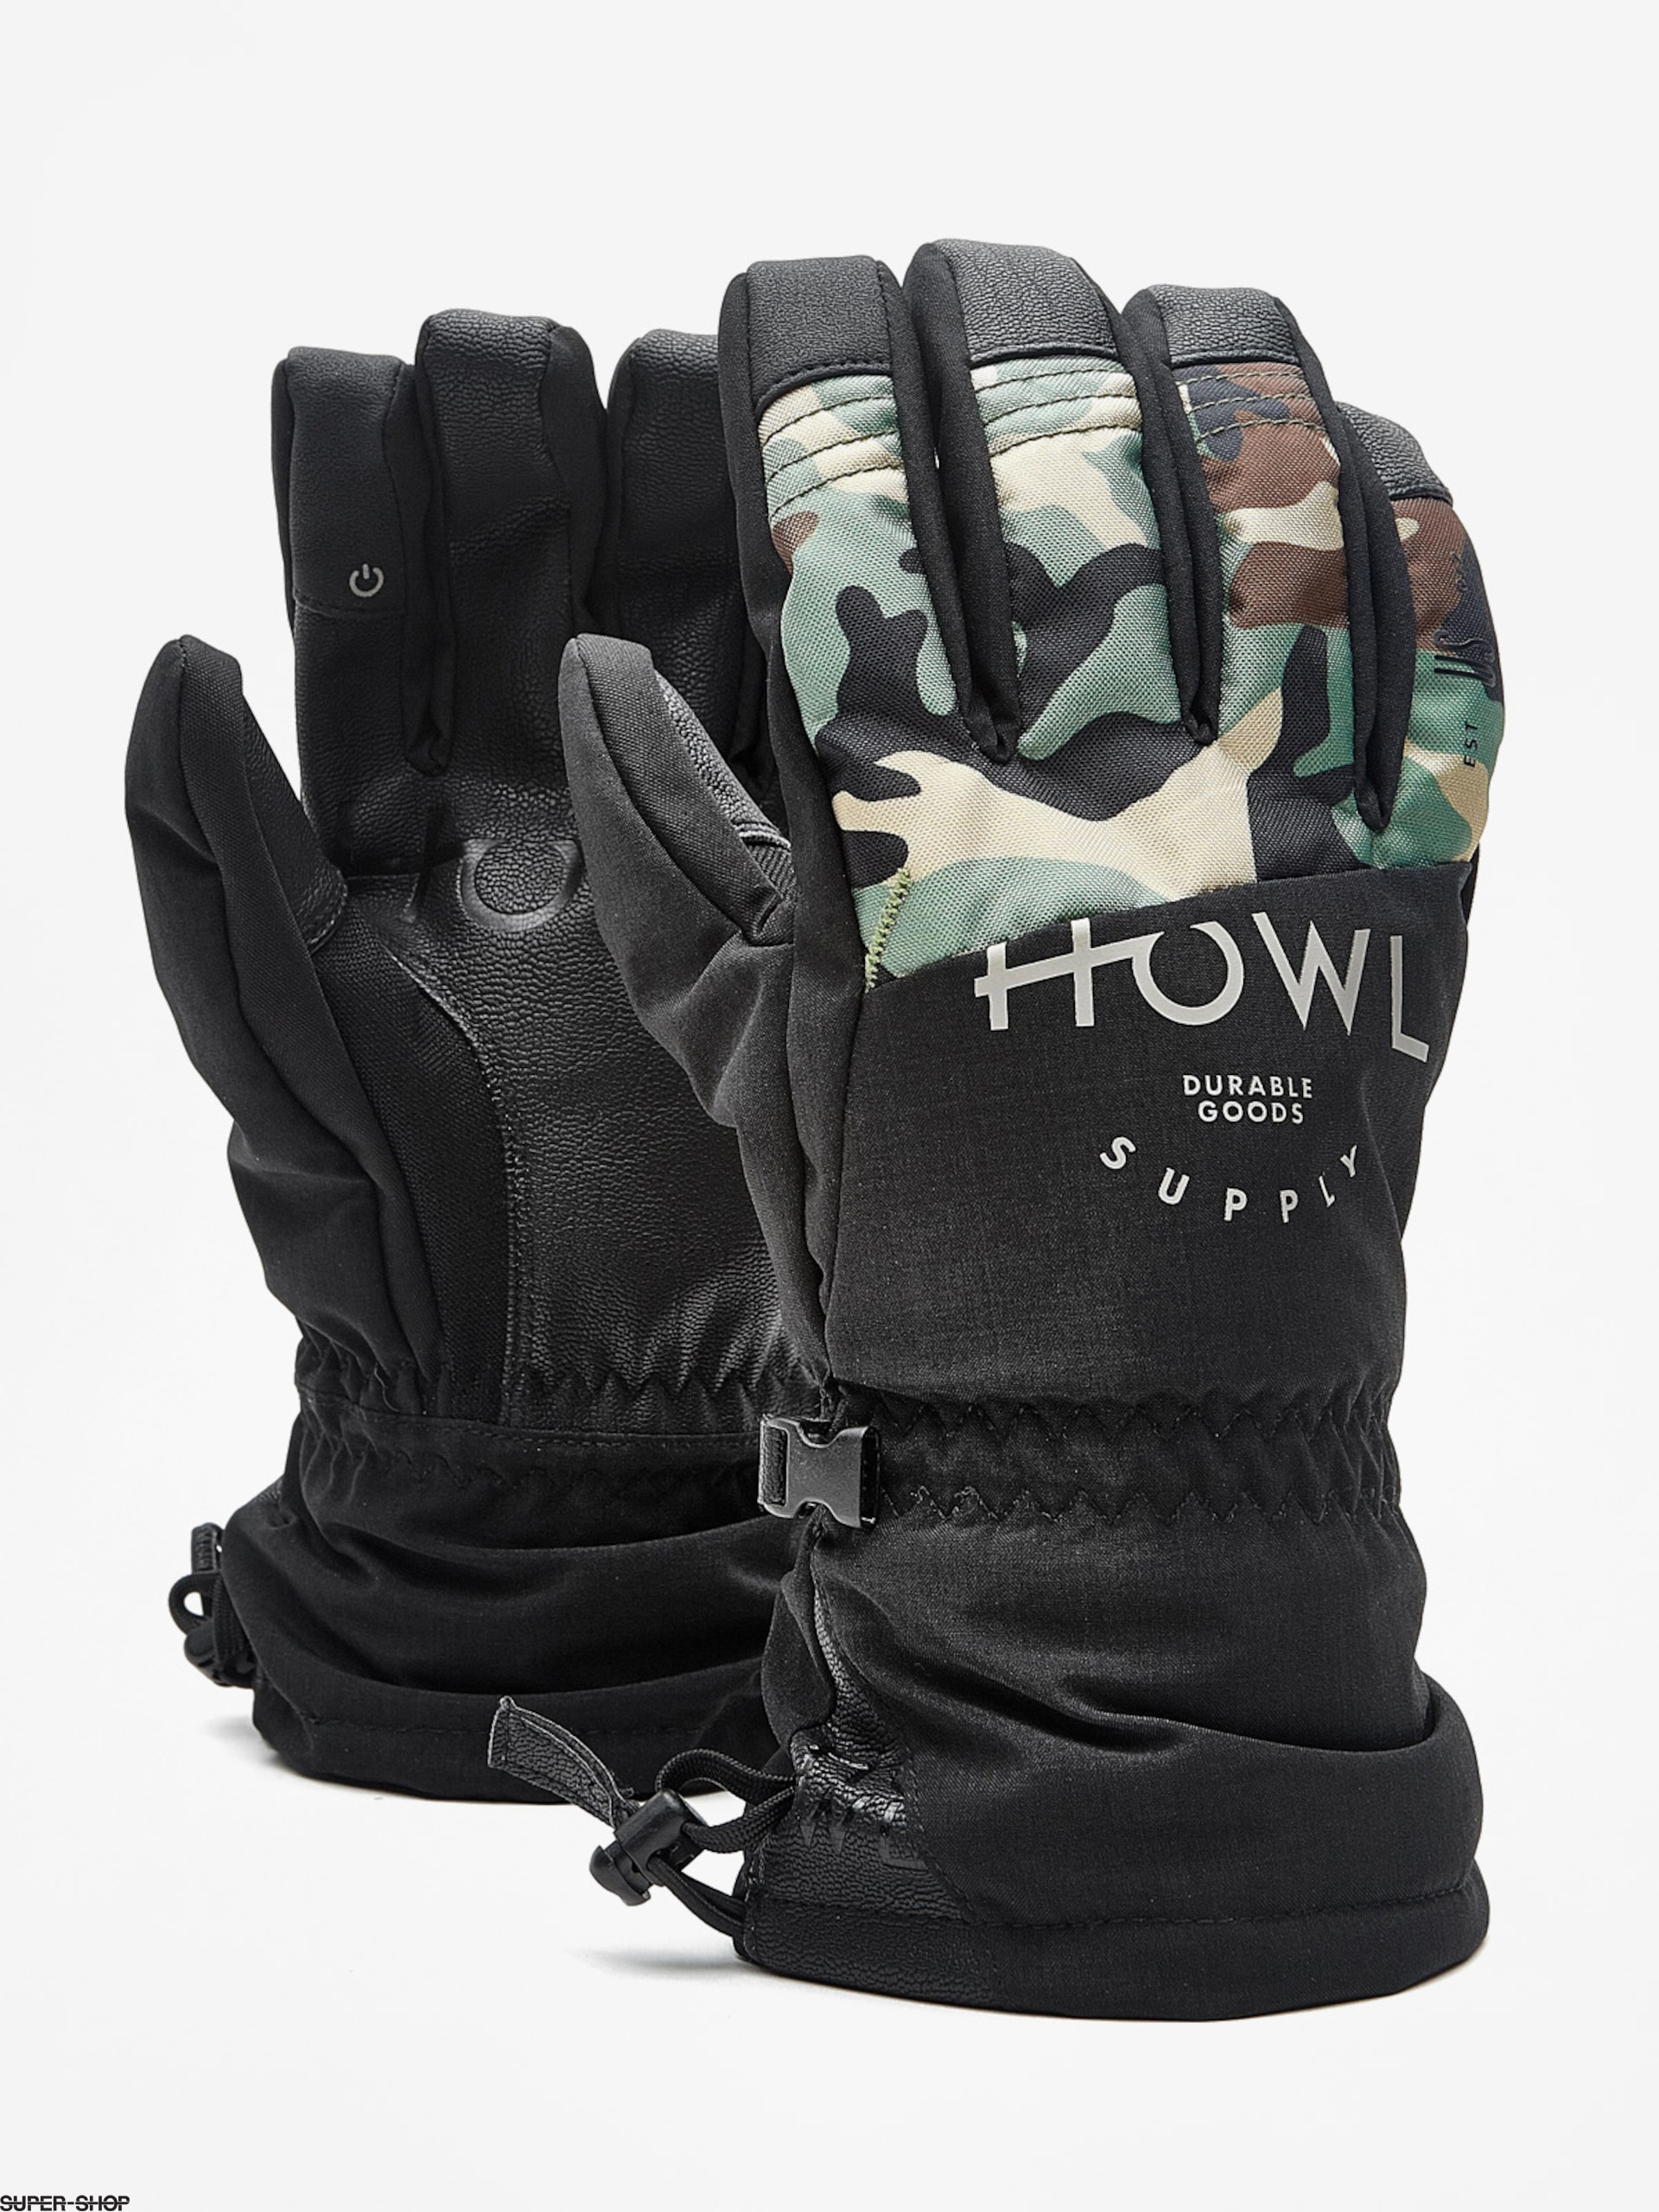 Howl Gloves Team Glove (black)